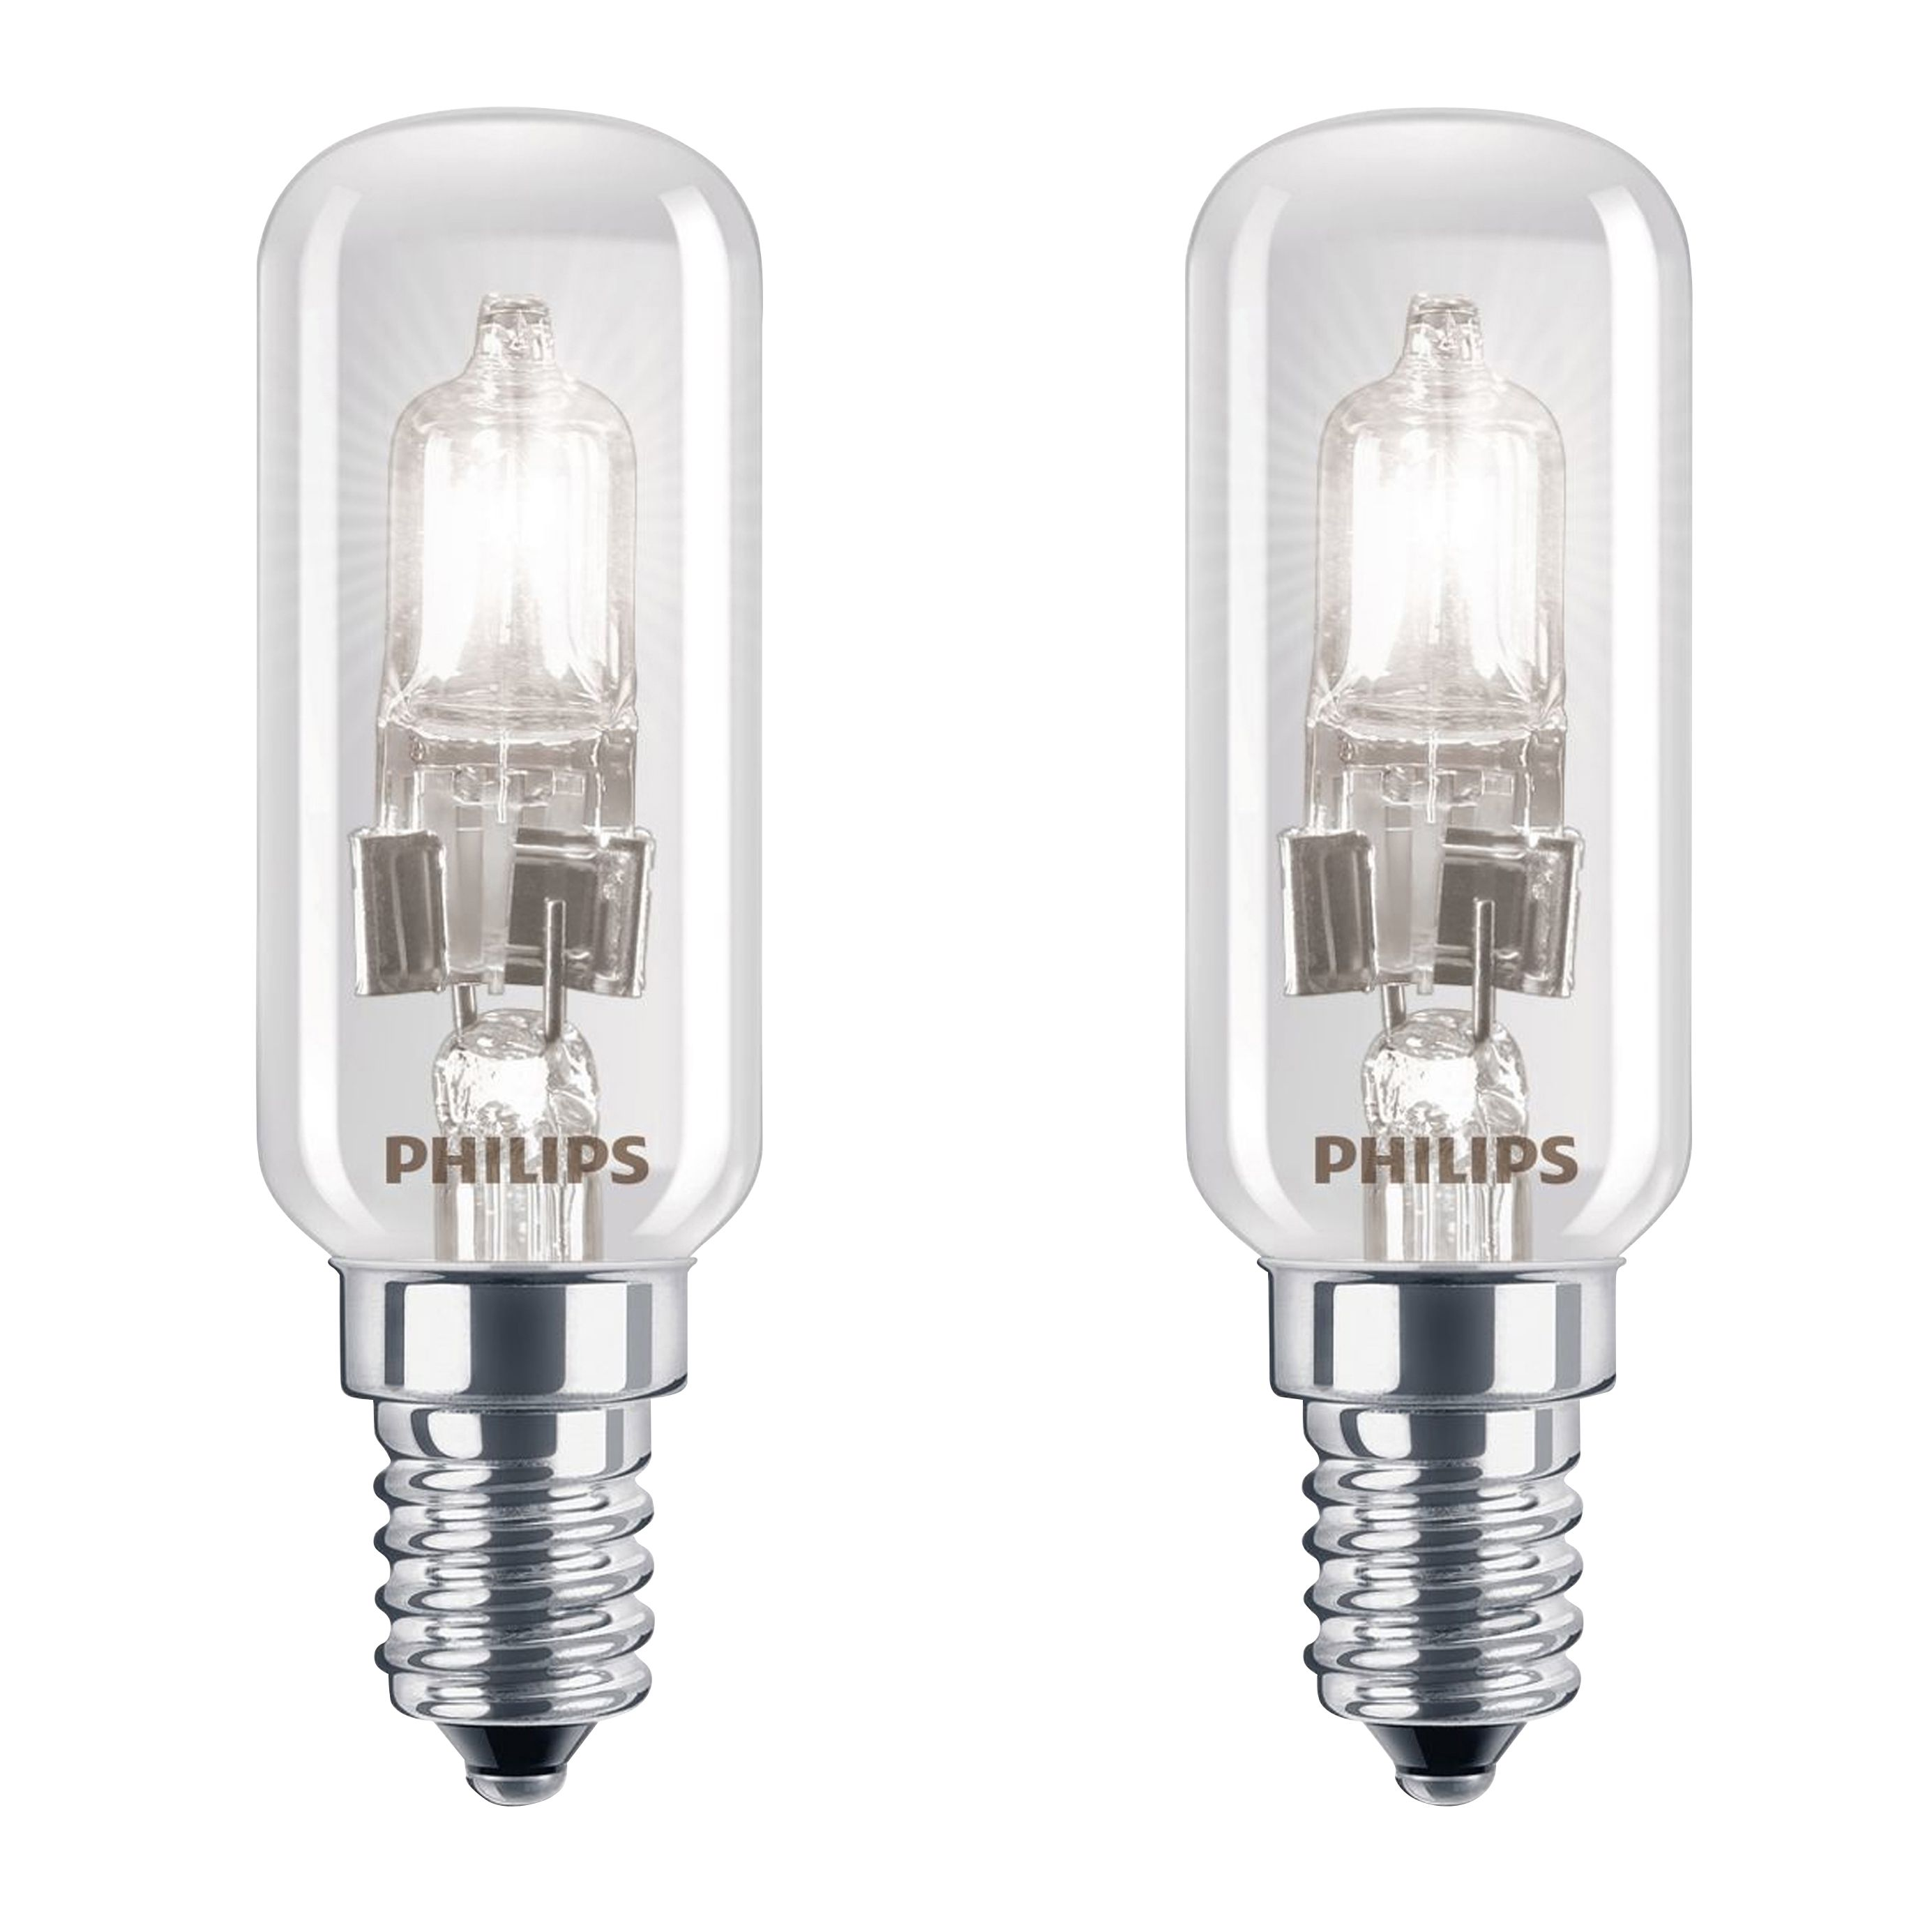 Led Cabinet Lighting Screwfix: Philips E14 28W Halogen Dimmable Appliance Light Bulb